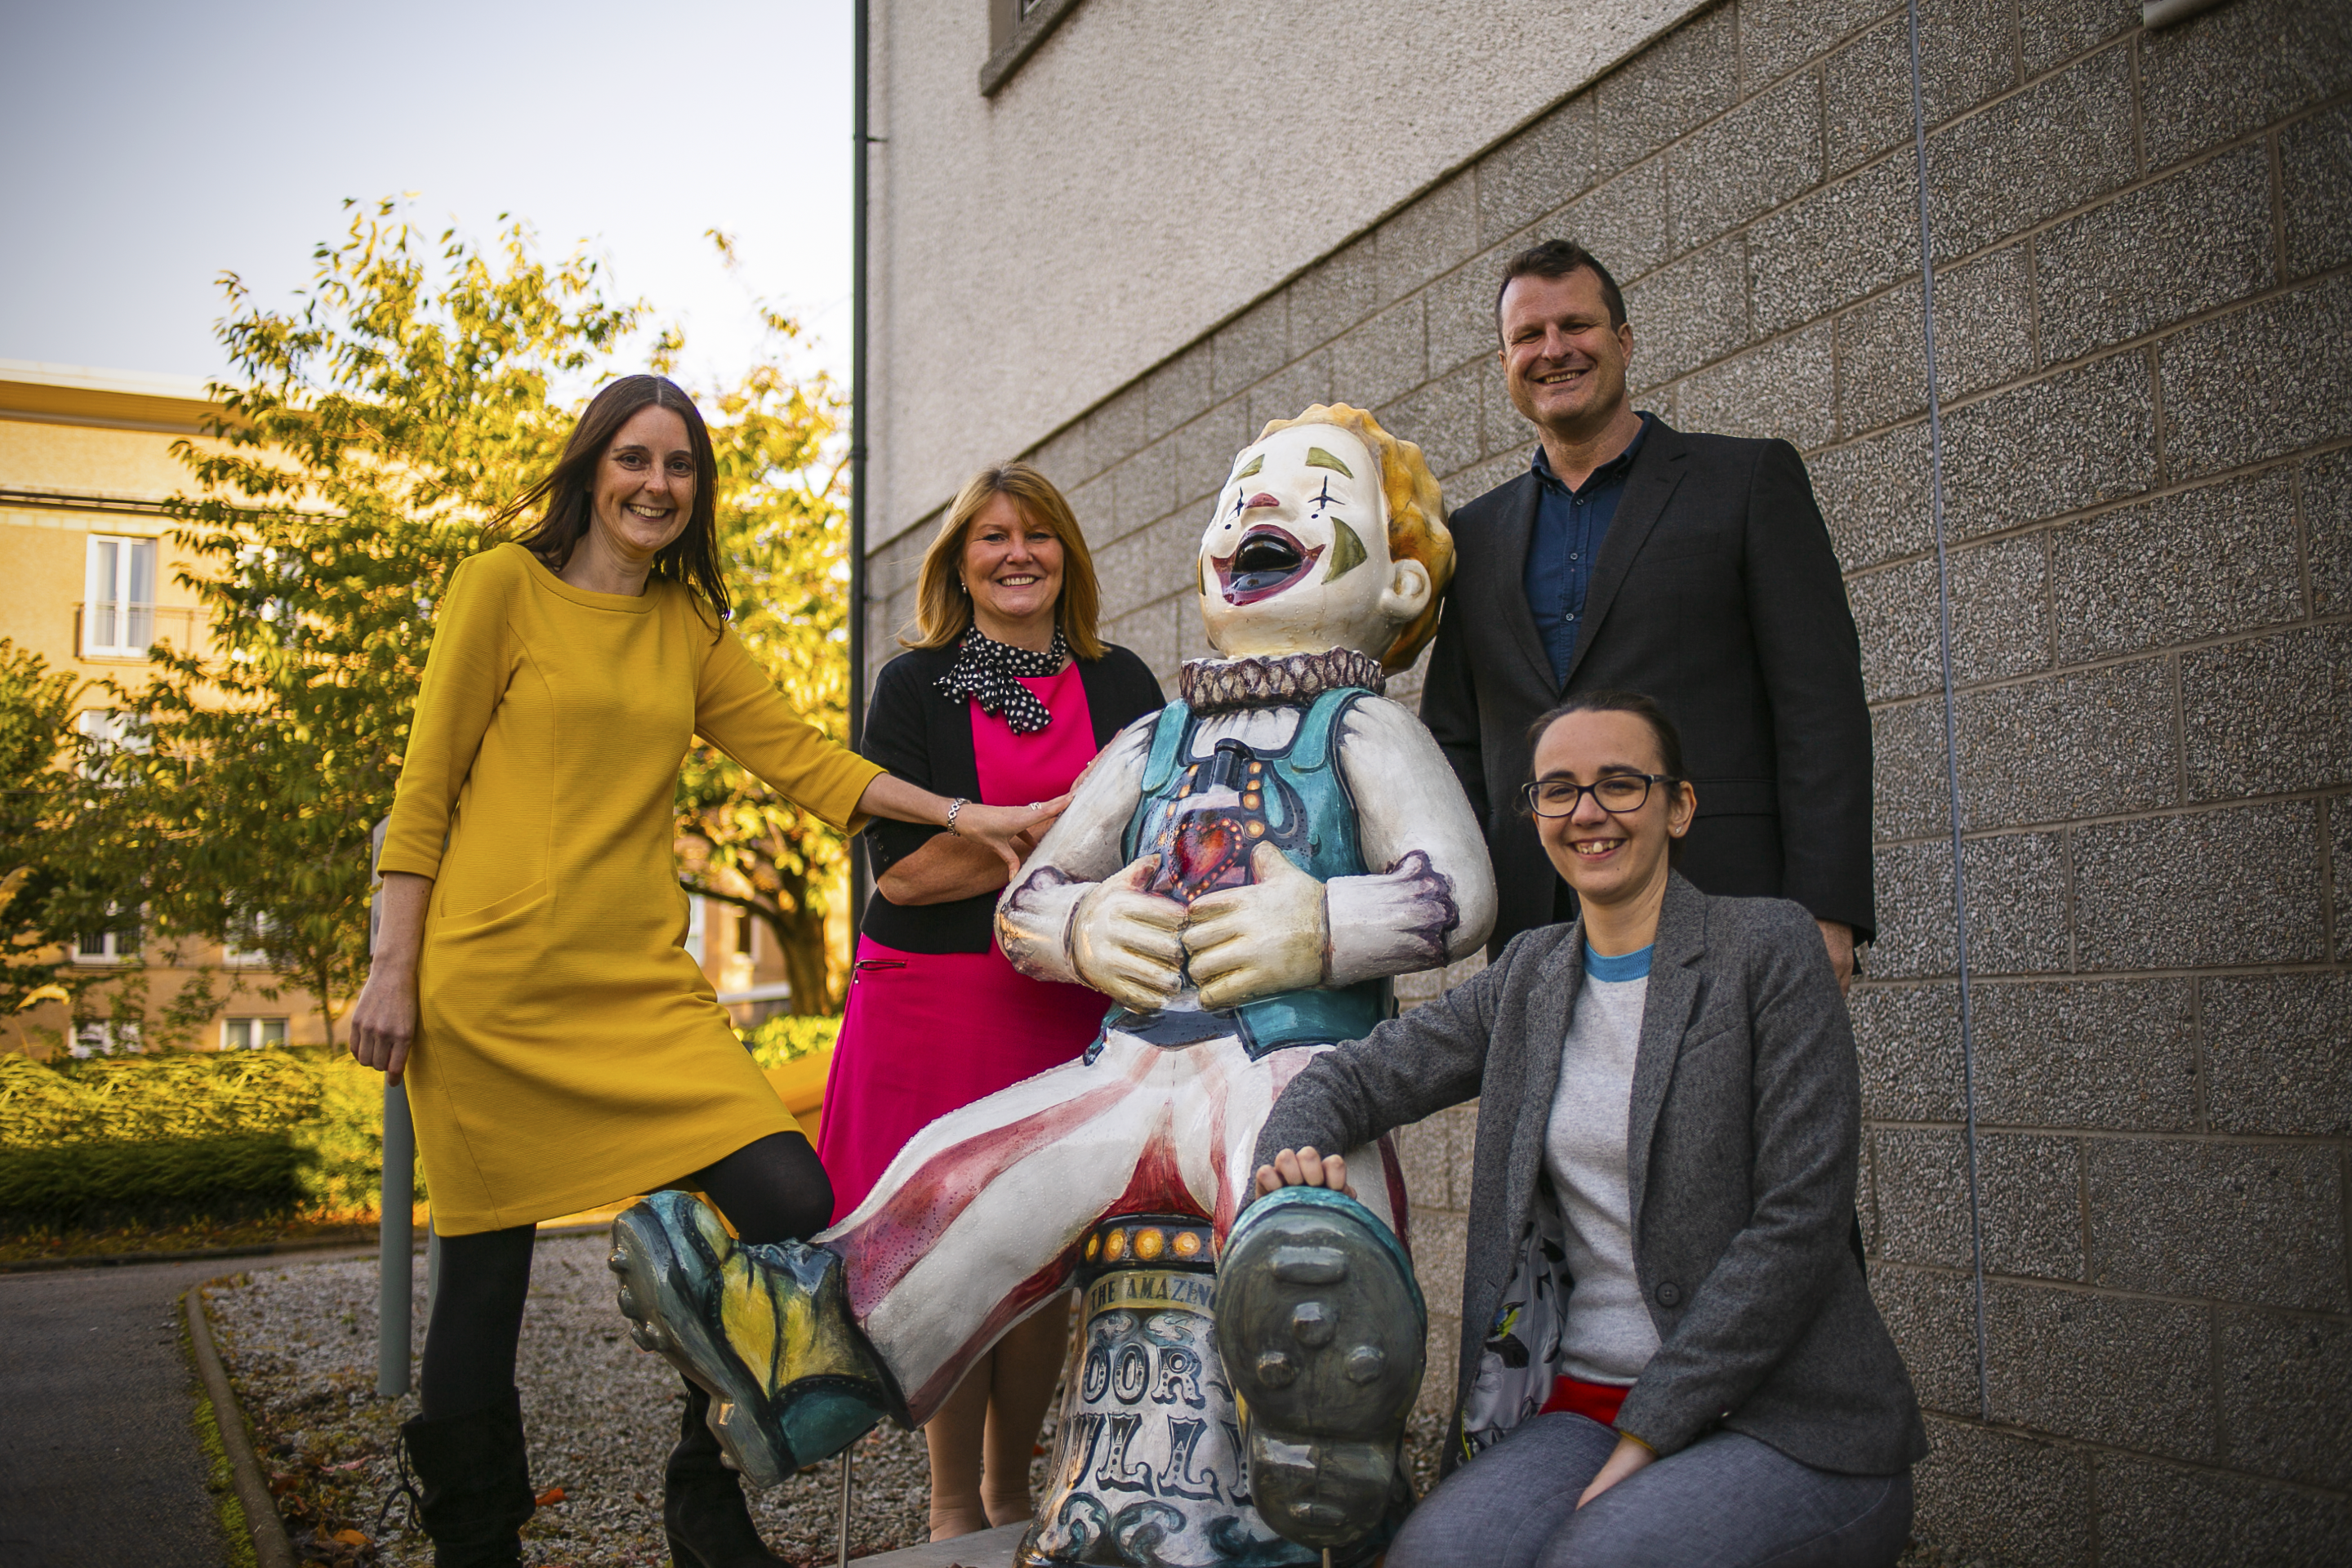 Rachael Smith and Sheila Reid of CAMHS and Tony Dinozzi and Katrina McKay of Wood with the sculpture